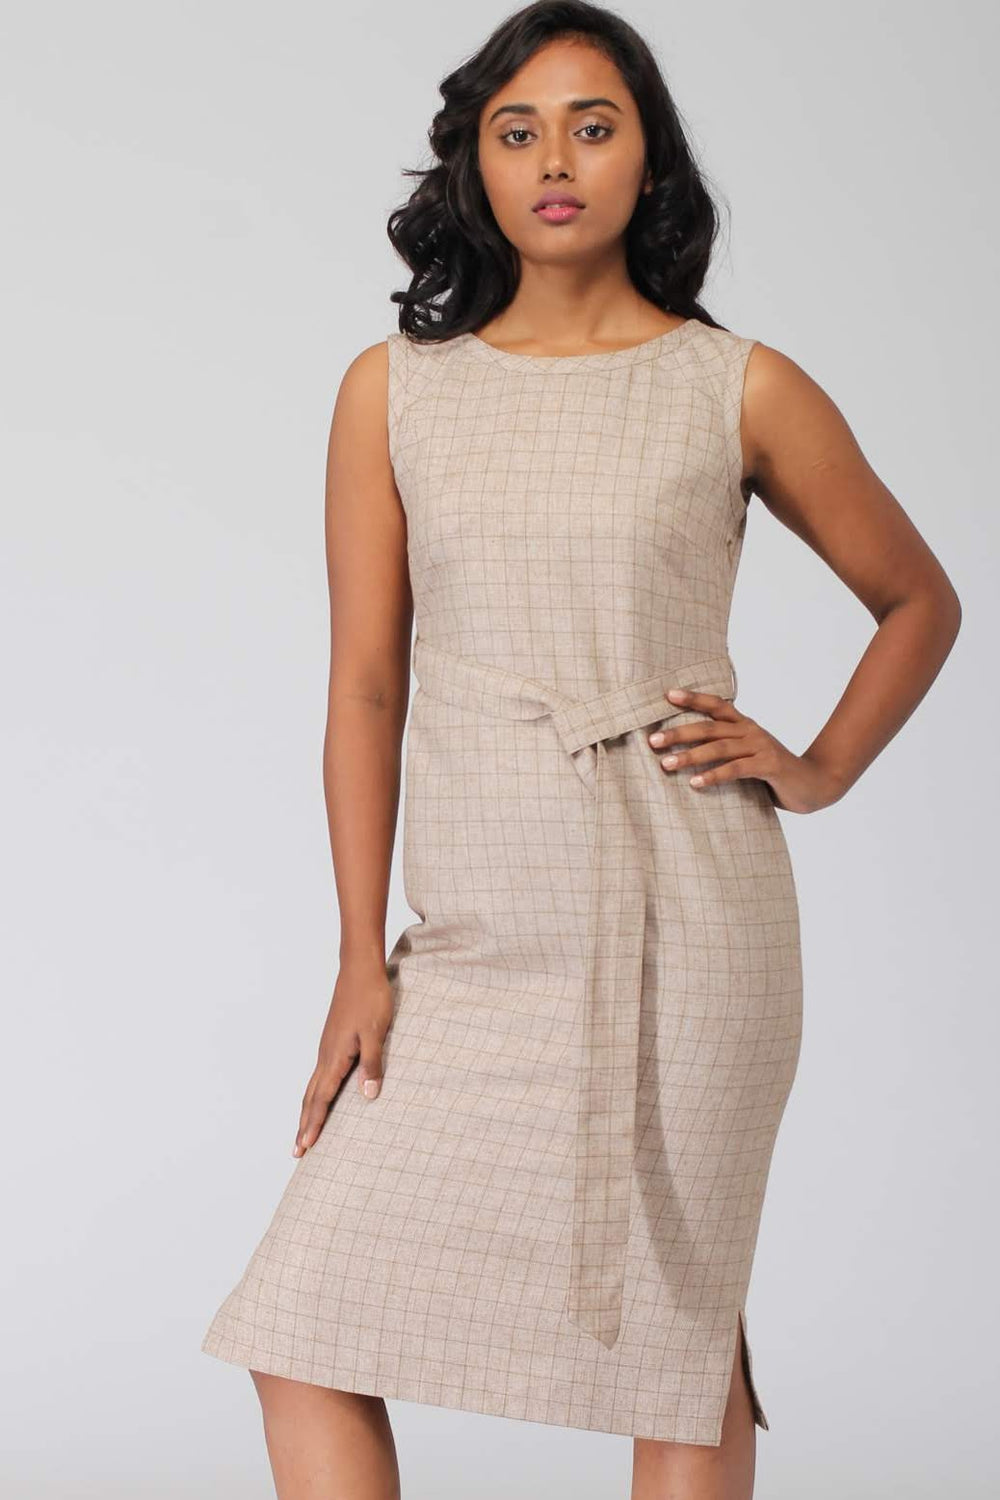 Dunkirk Shift Dress with removable belt